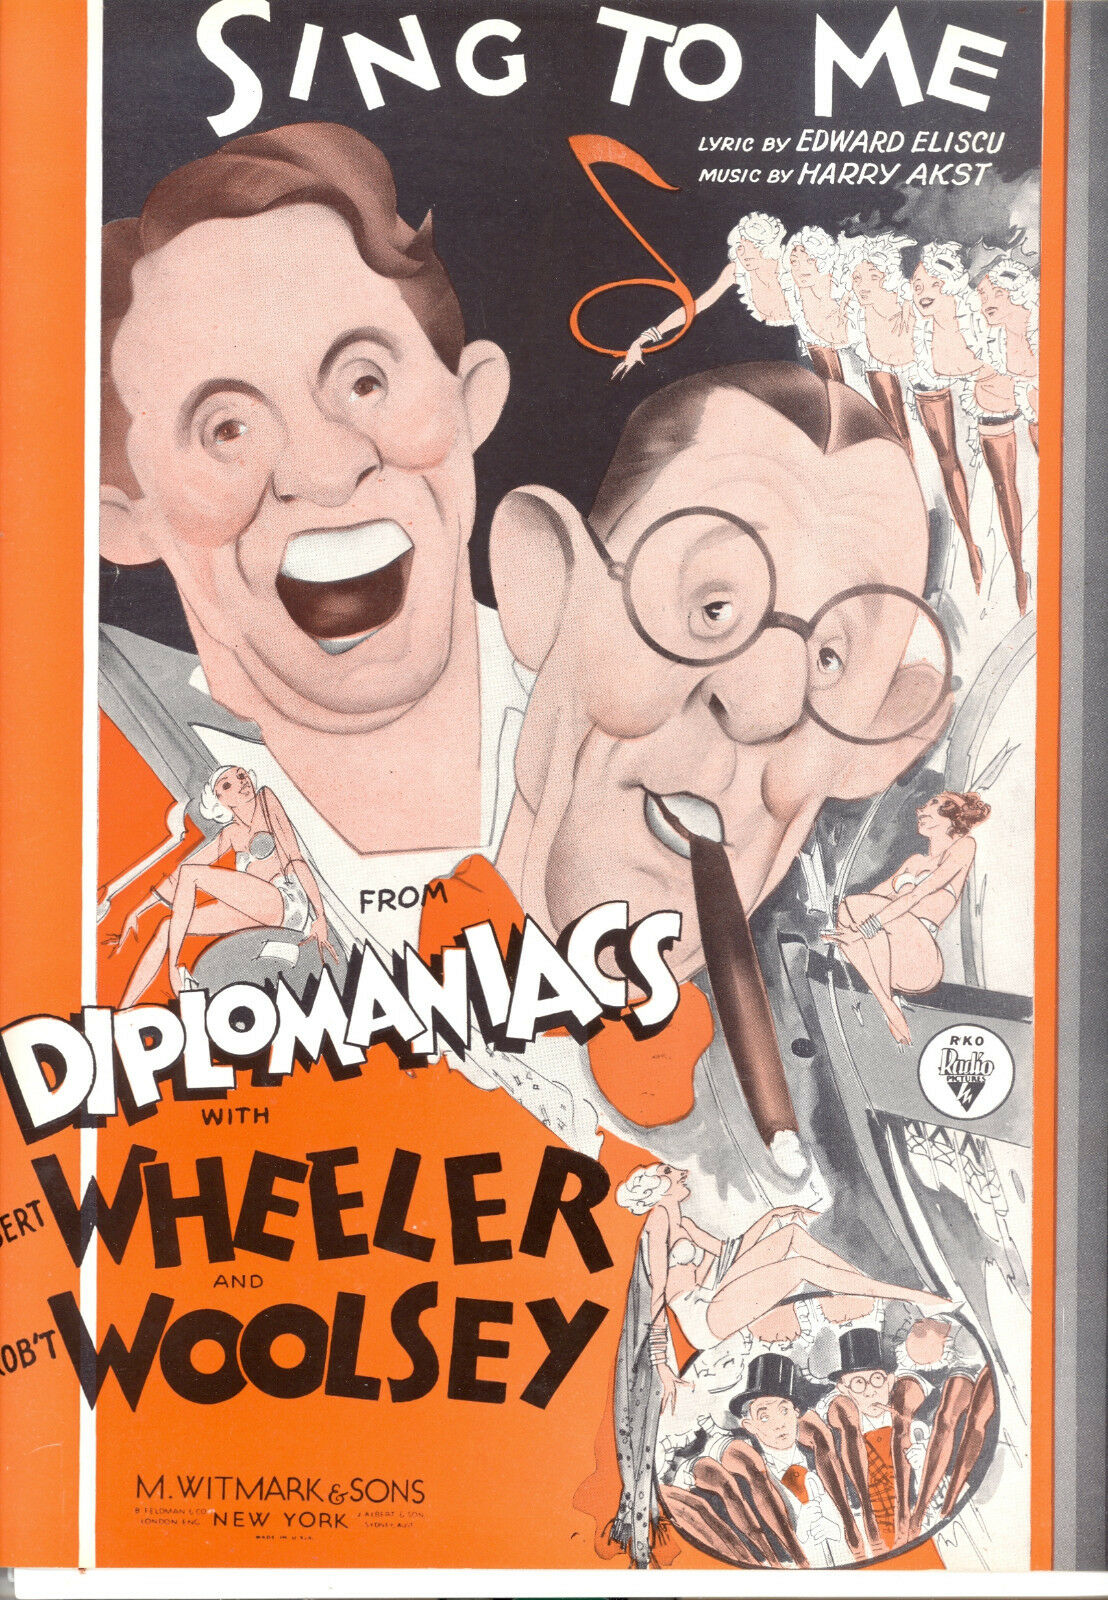 DIPLOMANIACS Sheet Music  Sing To Me  Wheeler & Woolsey